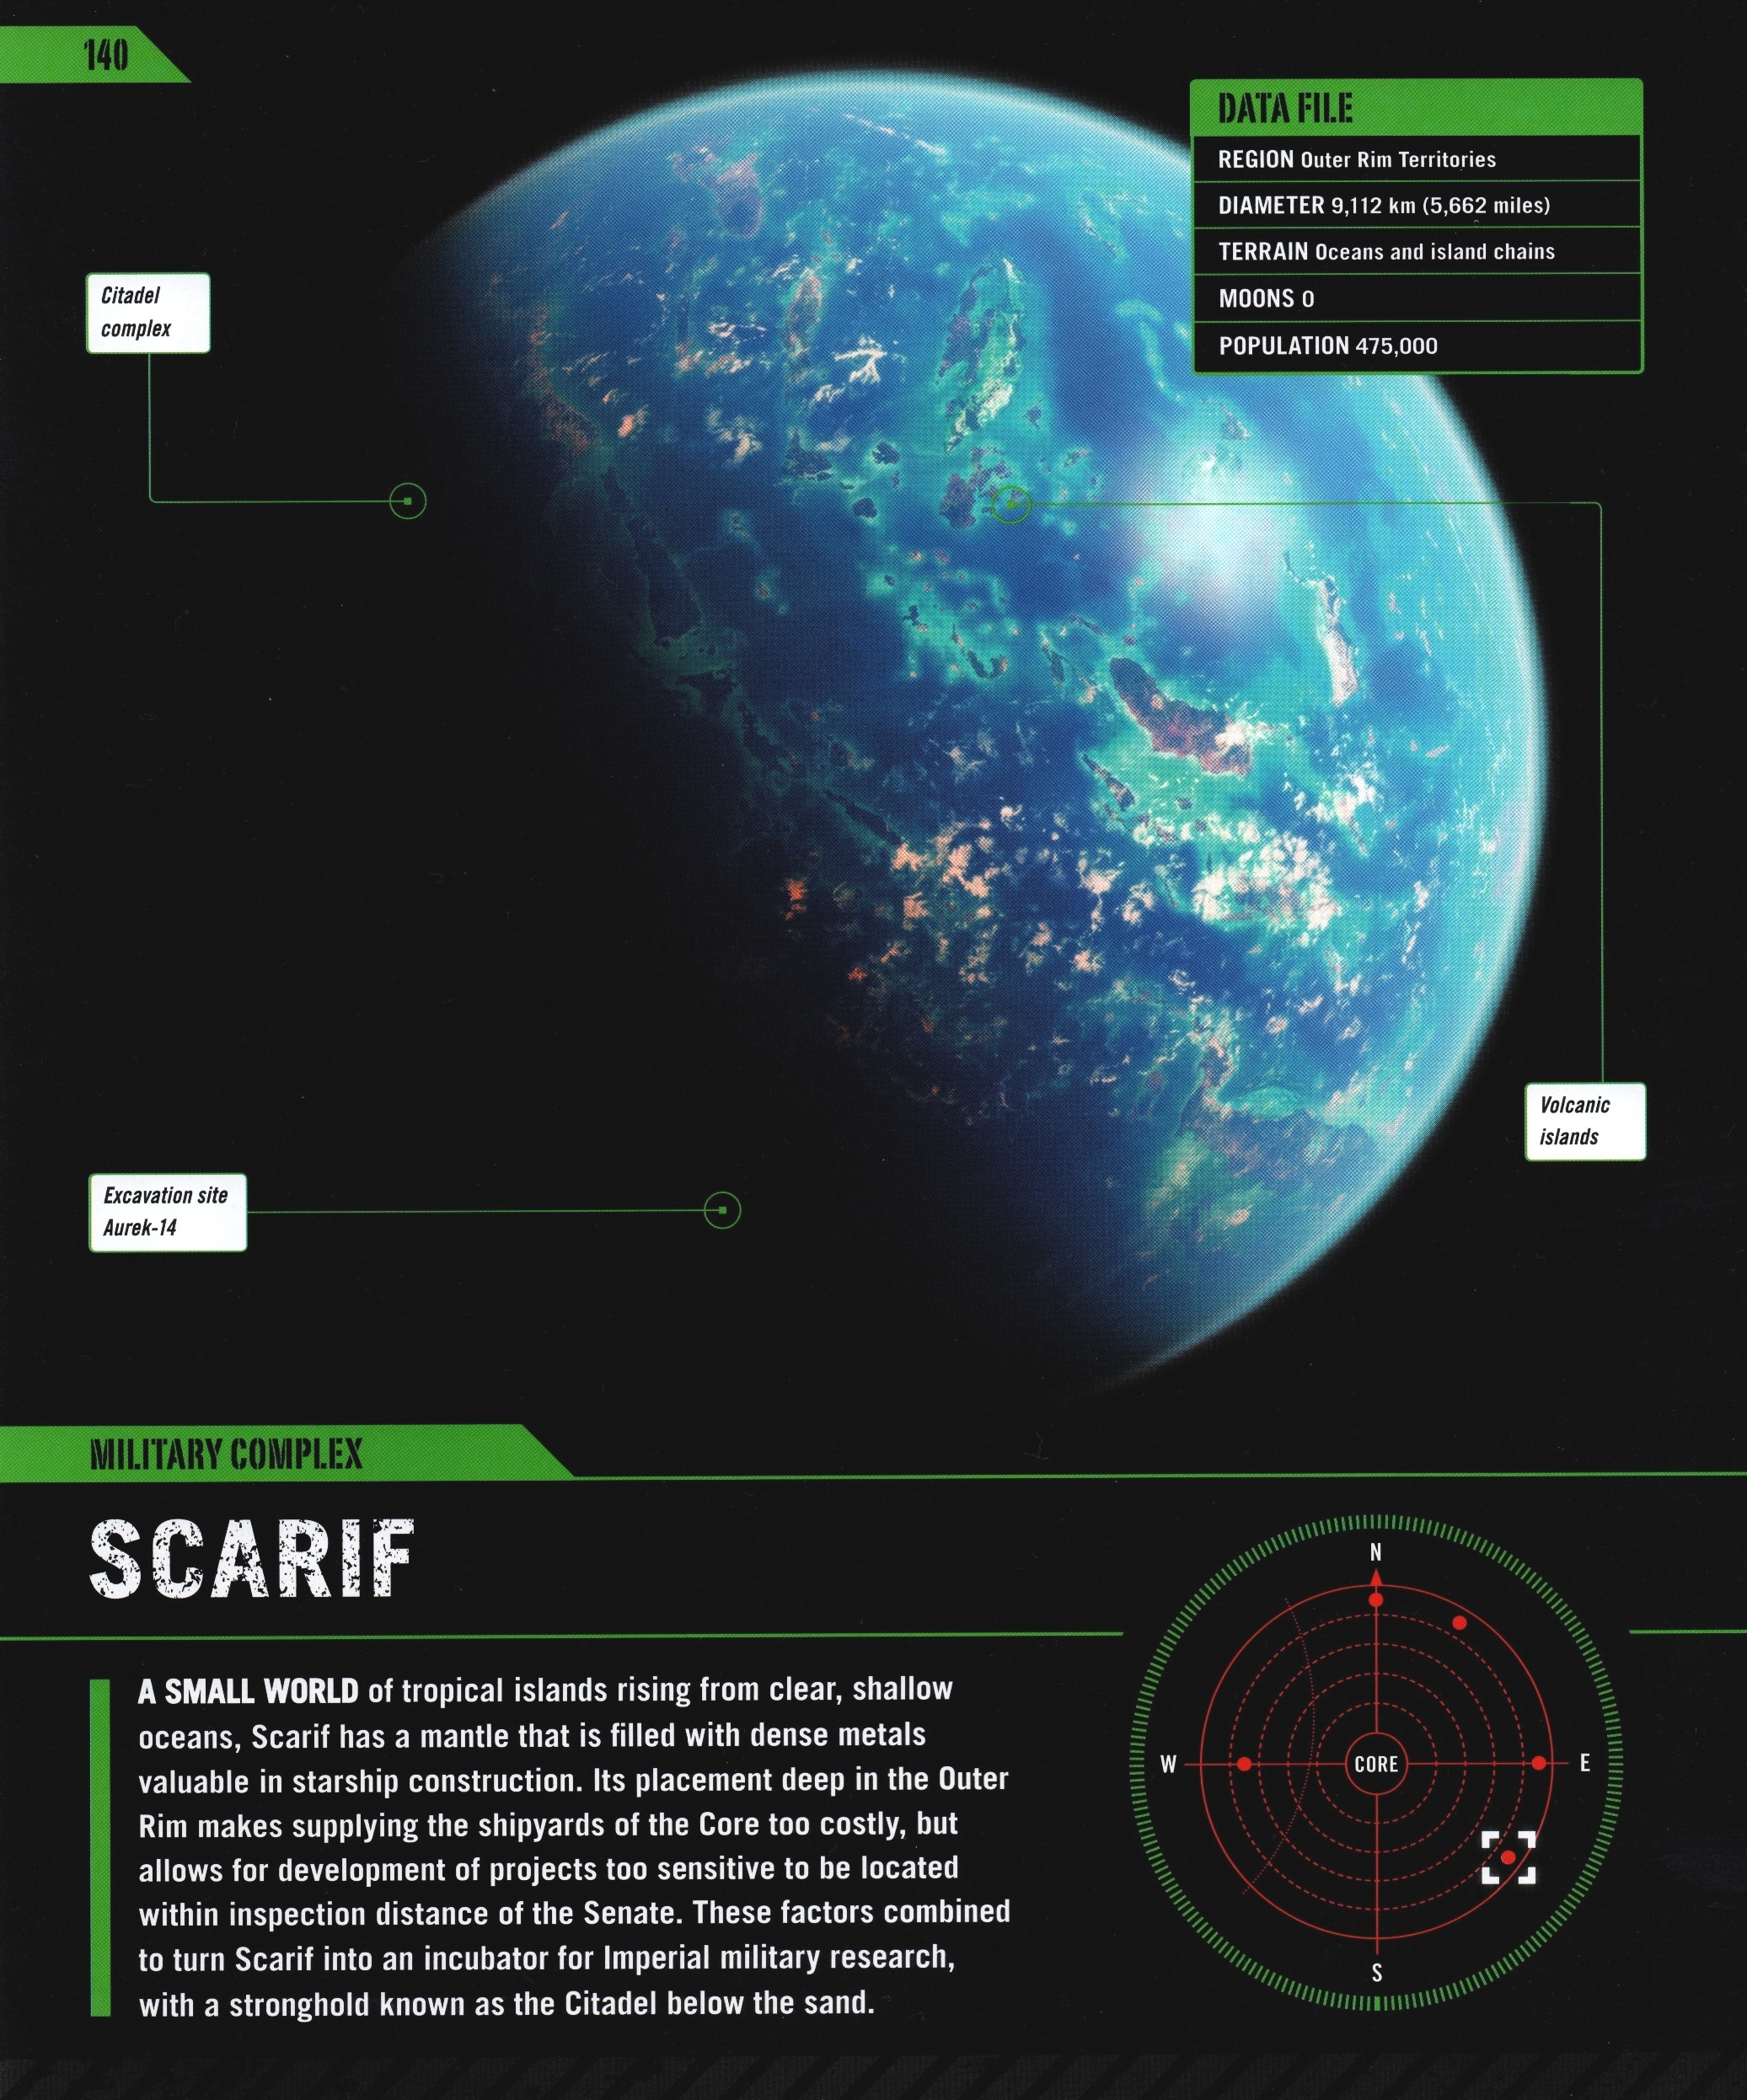 Rogue One Ultimate Visual Guide (b0bafett_Empire) p140